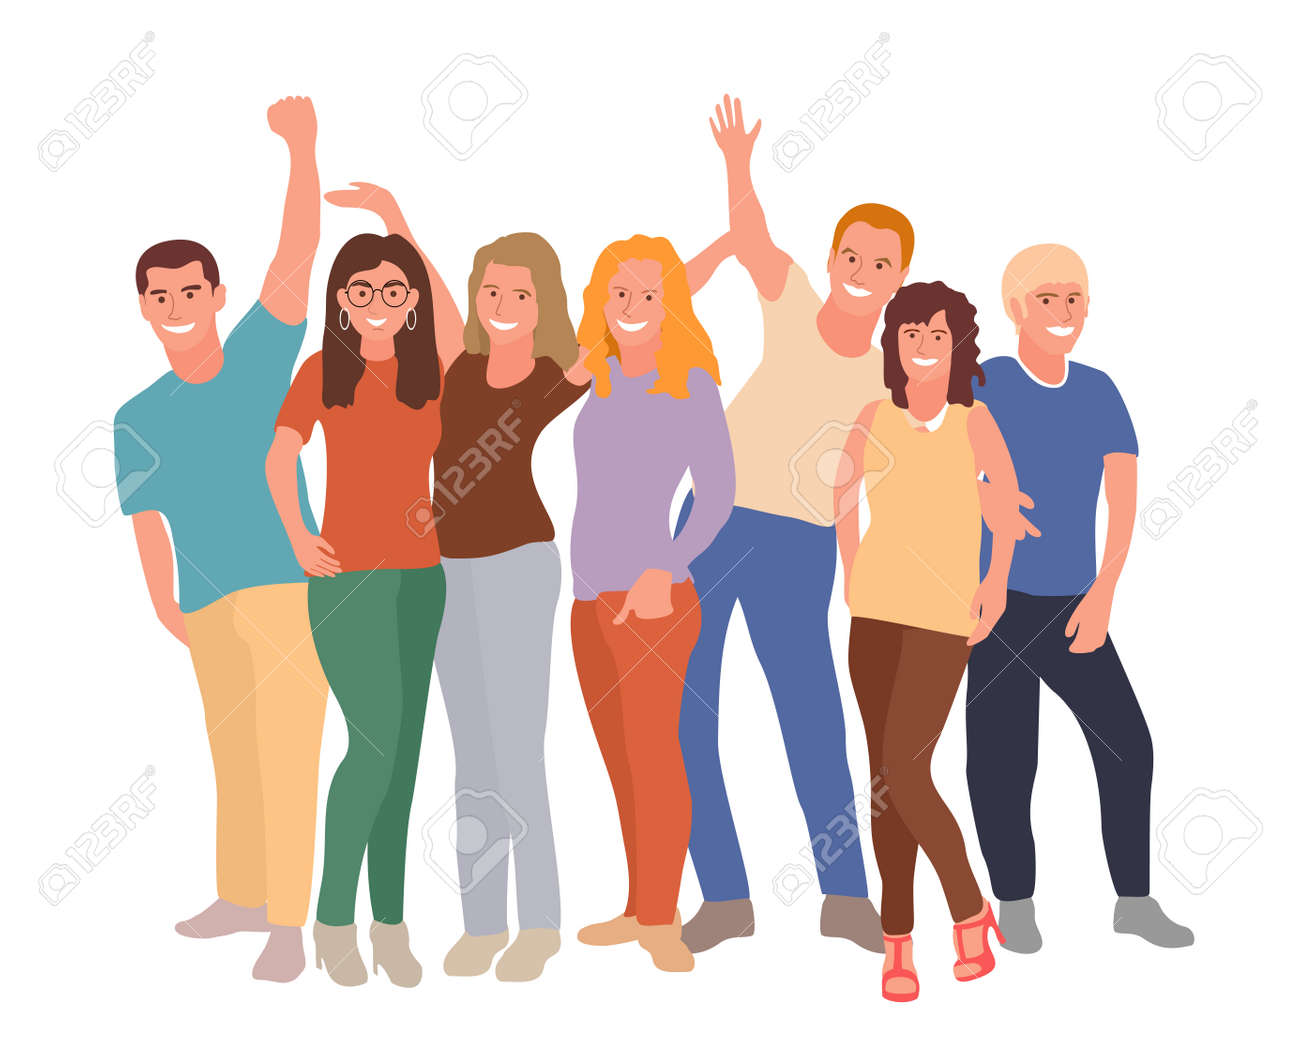 Group portrait of diverse happy young people standing together and hugging. Team of friends. Friendship concept. Young people group in casual clothes isolated on white background. vector illustration - 169743670